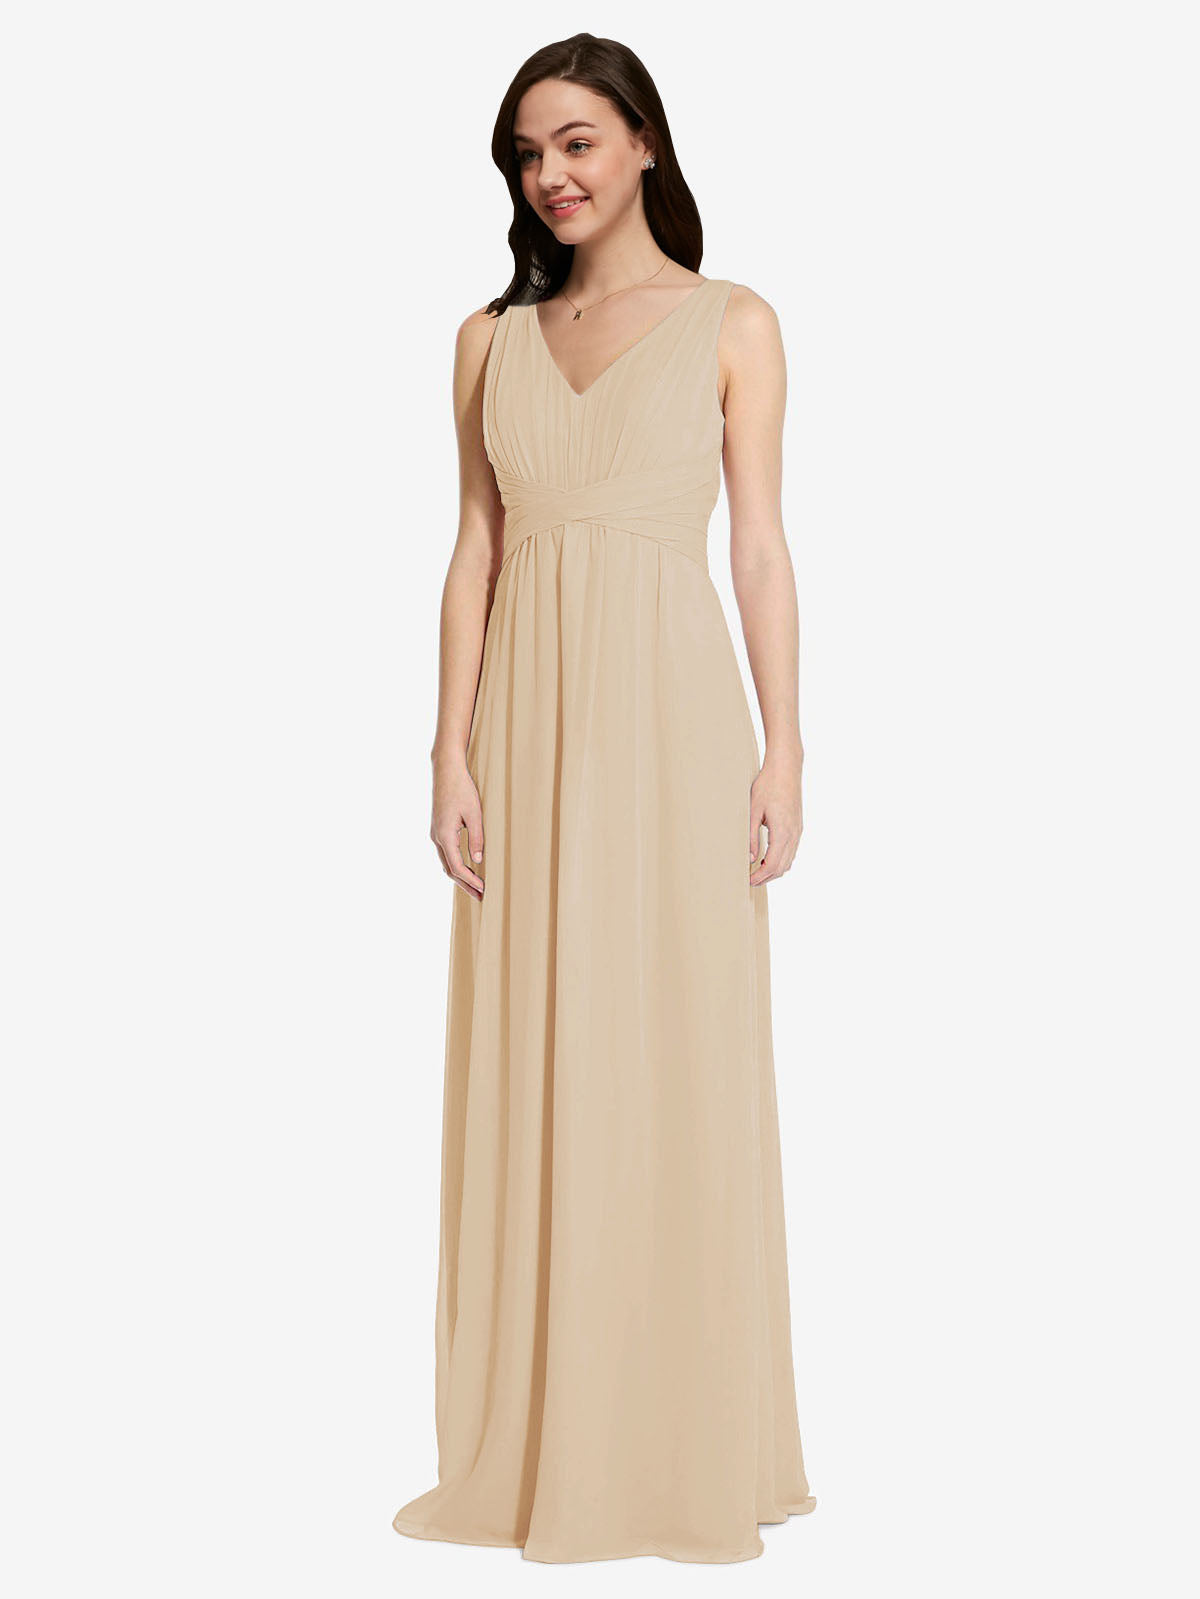 Long A-Line V-Neck Sleeveless Champagne Chiffon Bridesmaid Dress Auckland